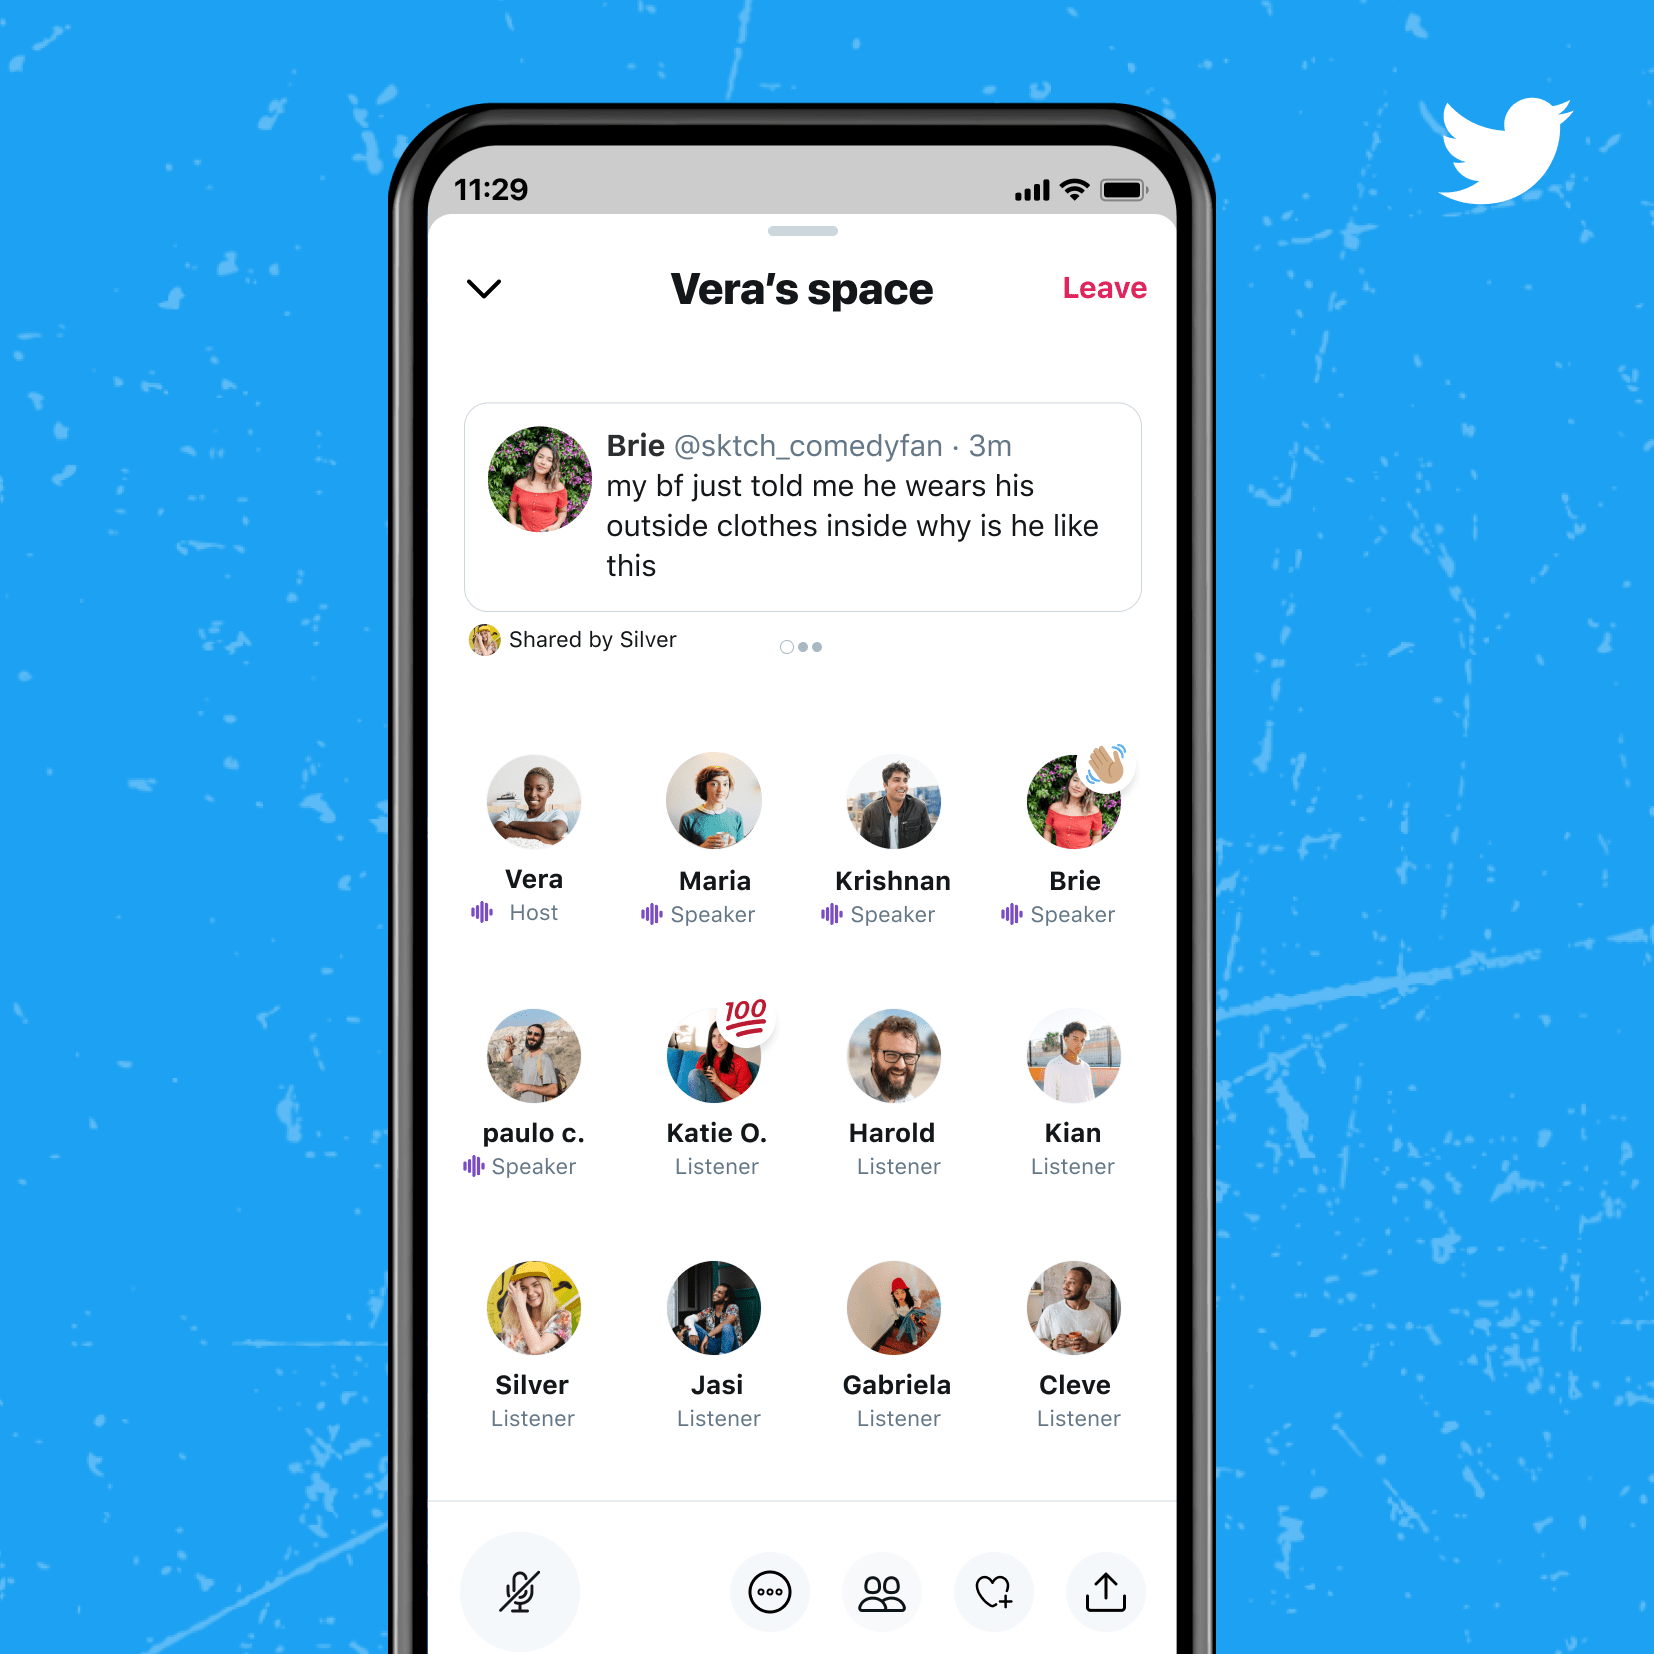 Twitter Spaces Allows you to send messages